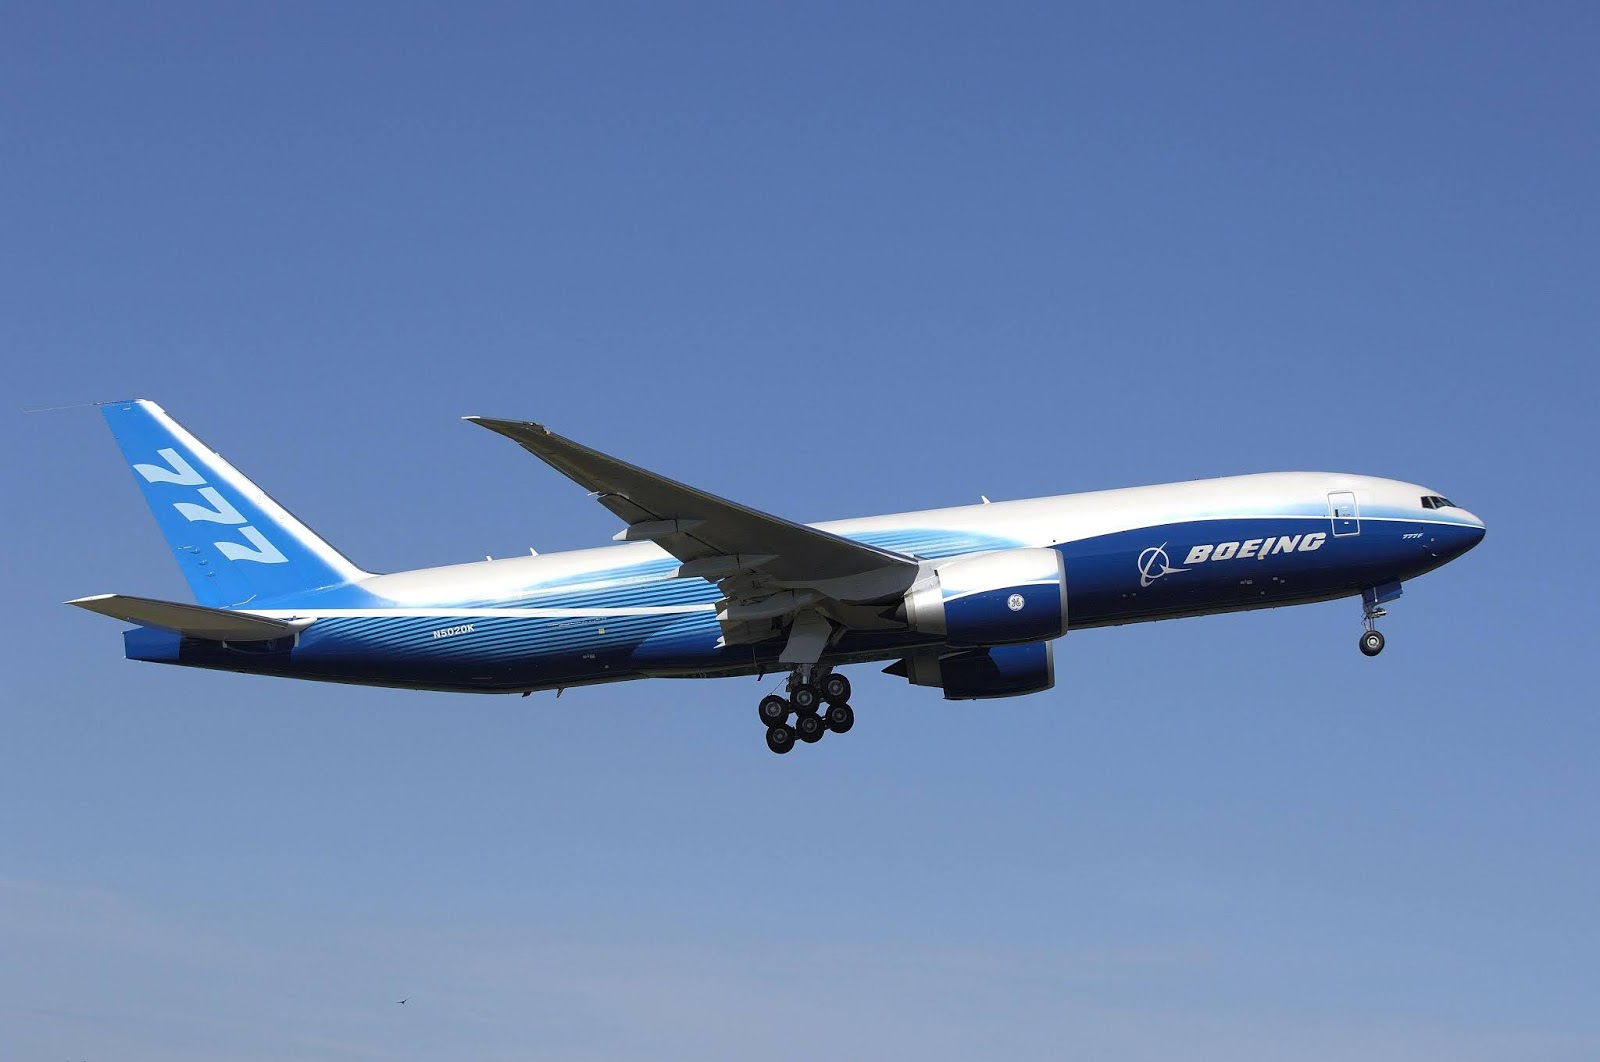 BOEING 777 airliner aircraft airplane plane jet wallpaper